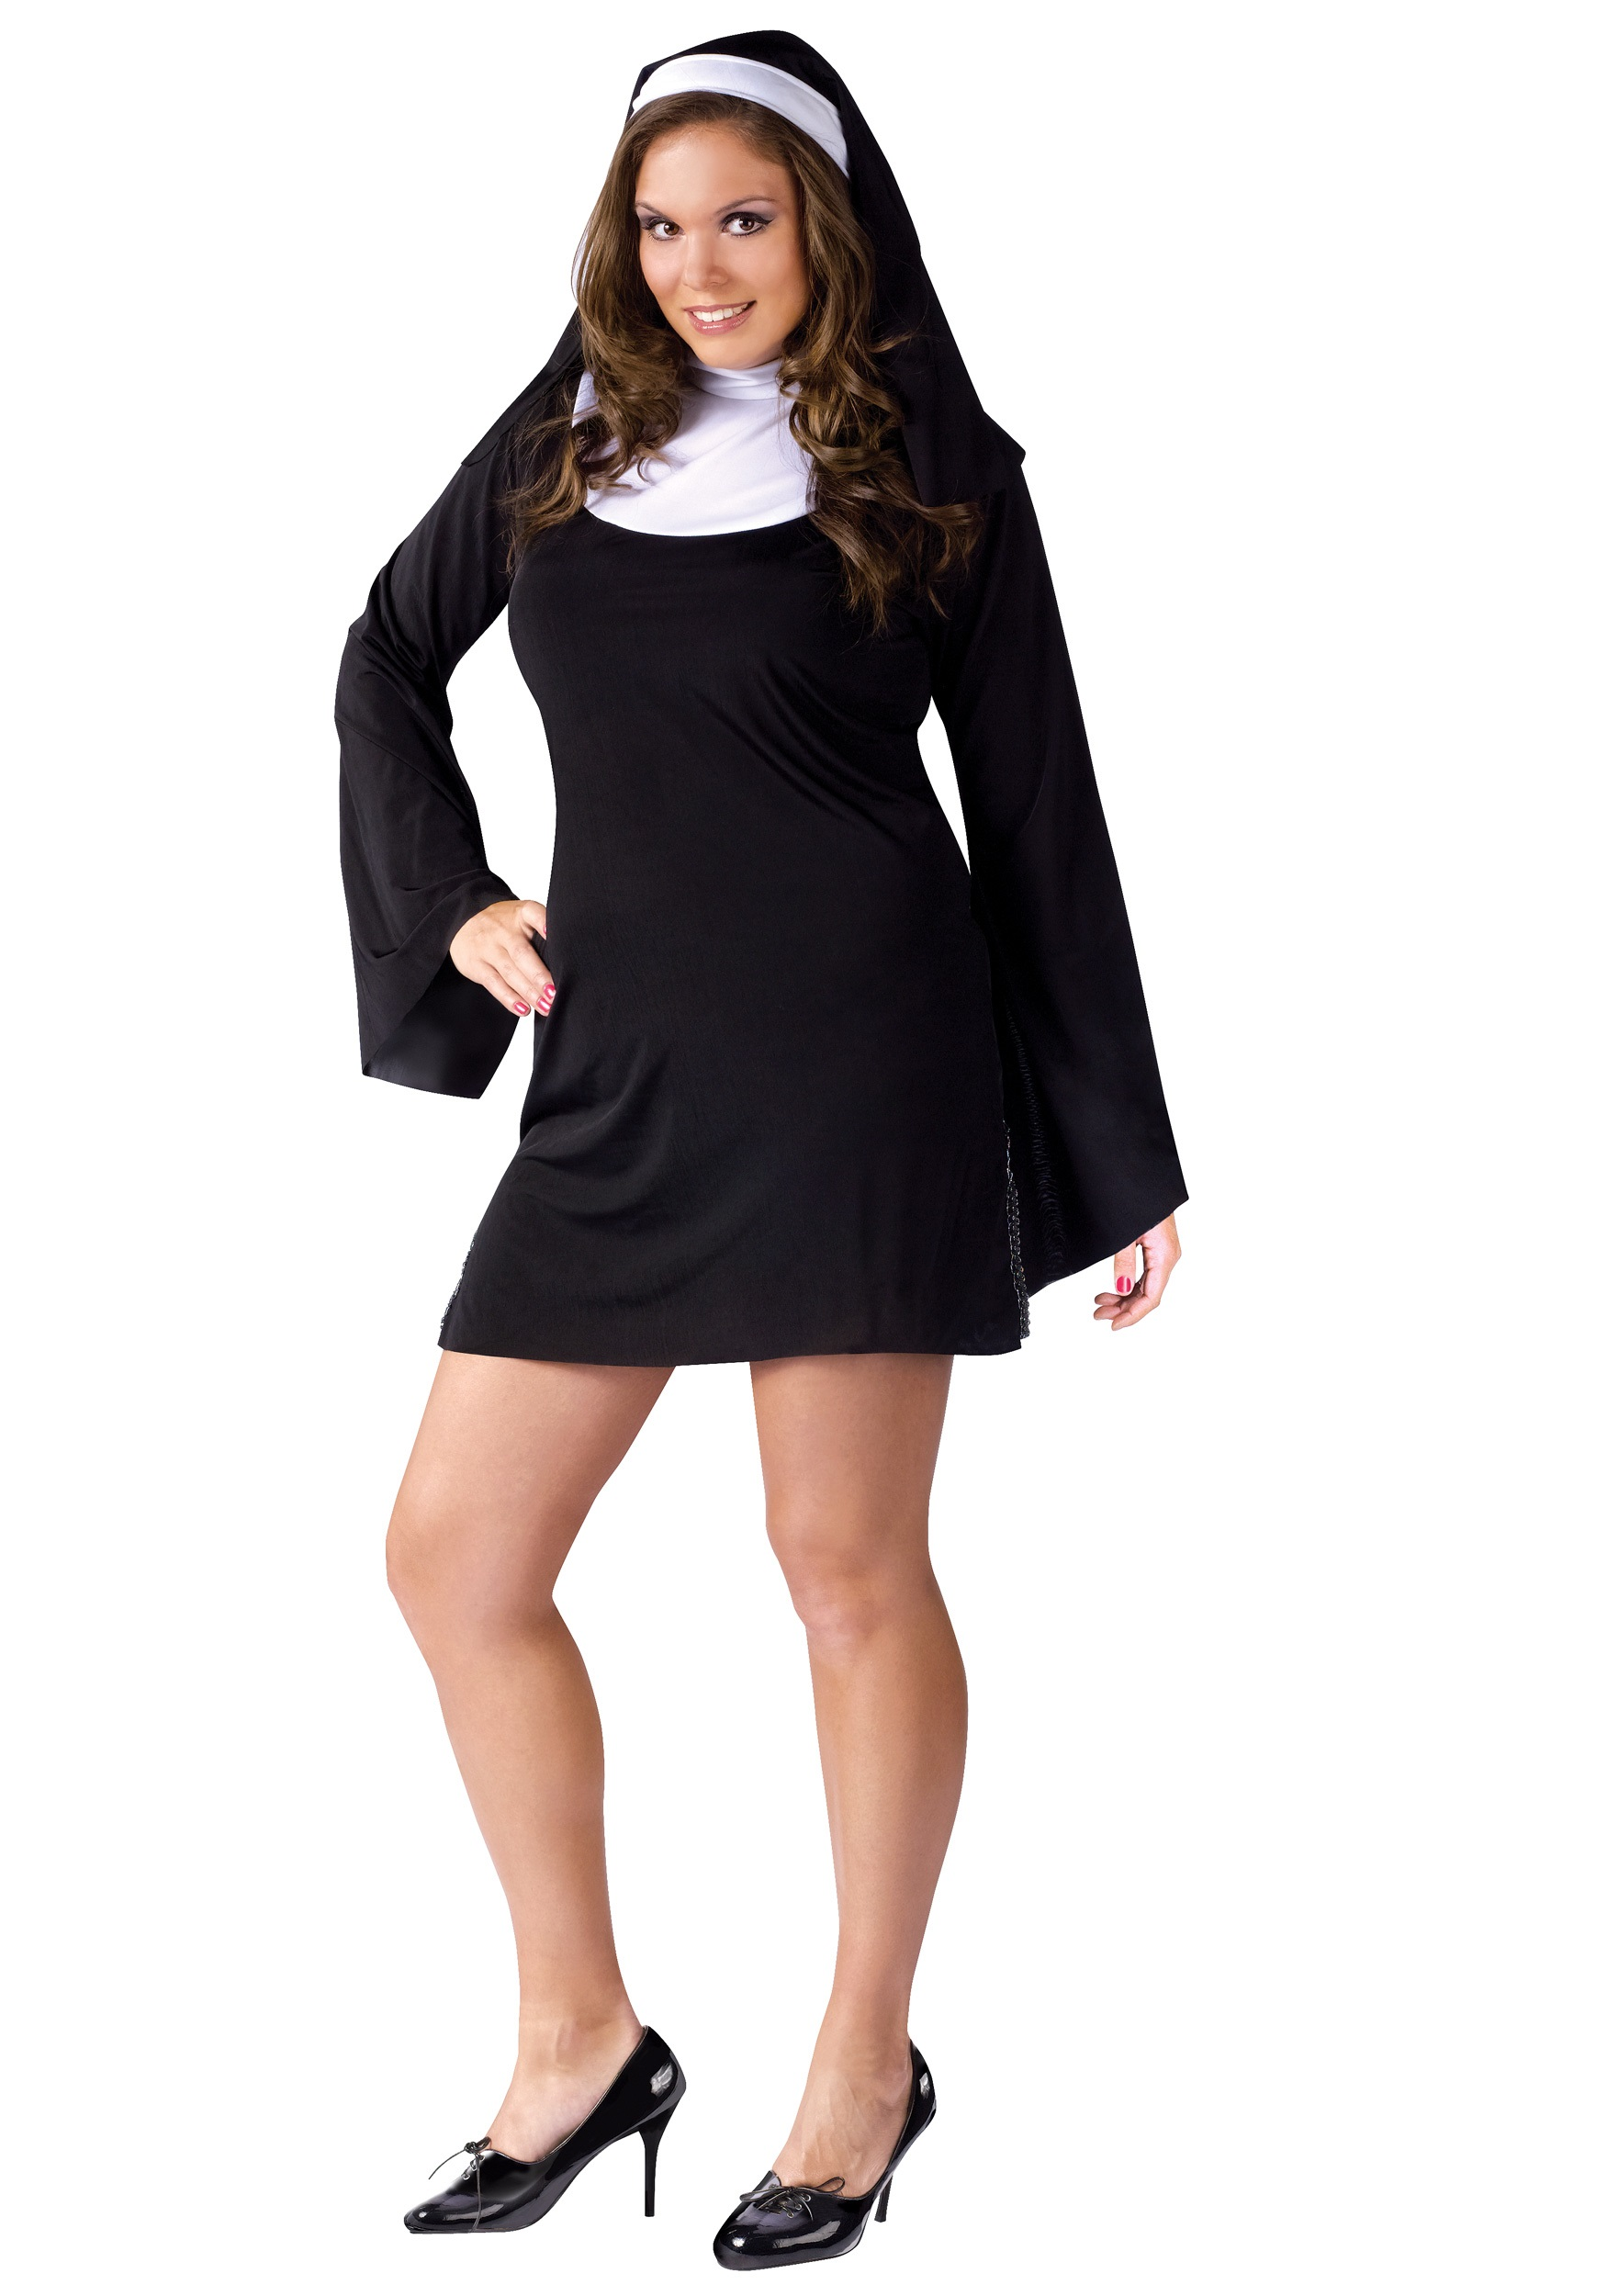 costumes for plus size adult